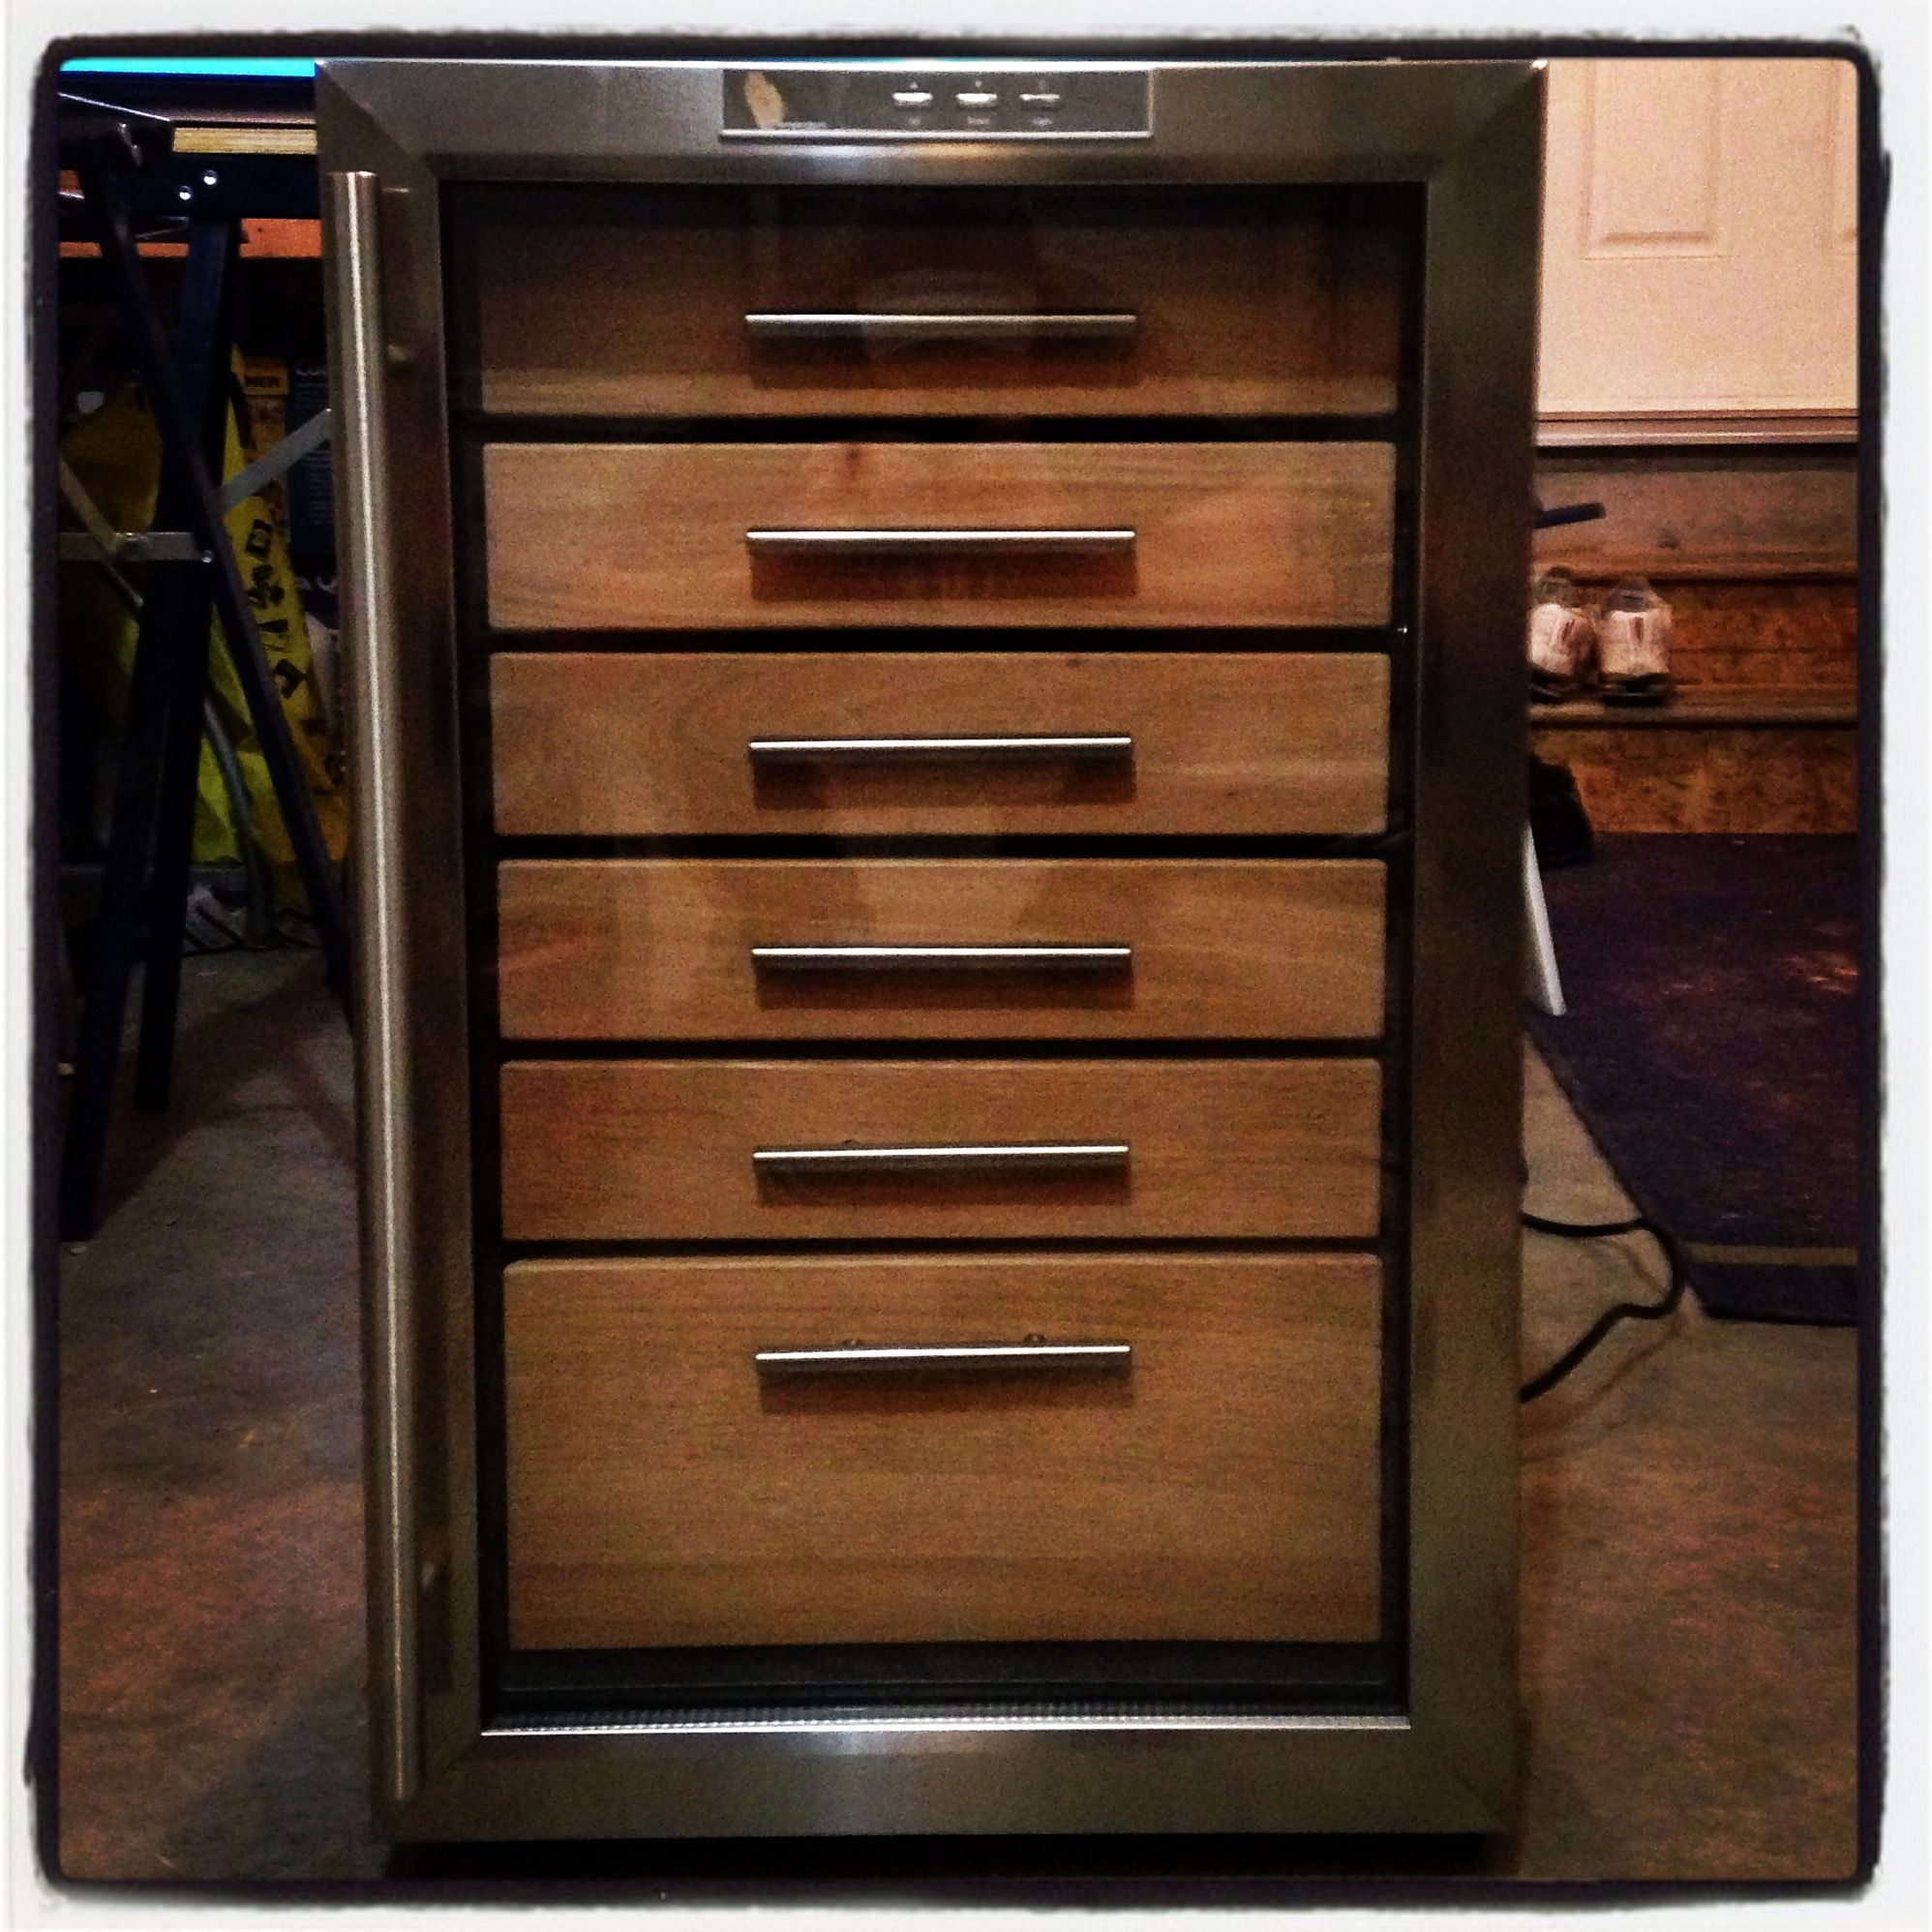 28 Bottle Wine Fridge Converted To A Cigar Humidor Wineador  # Muebles Humidores Para Puros